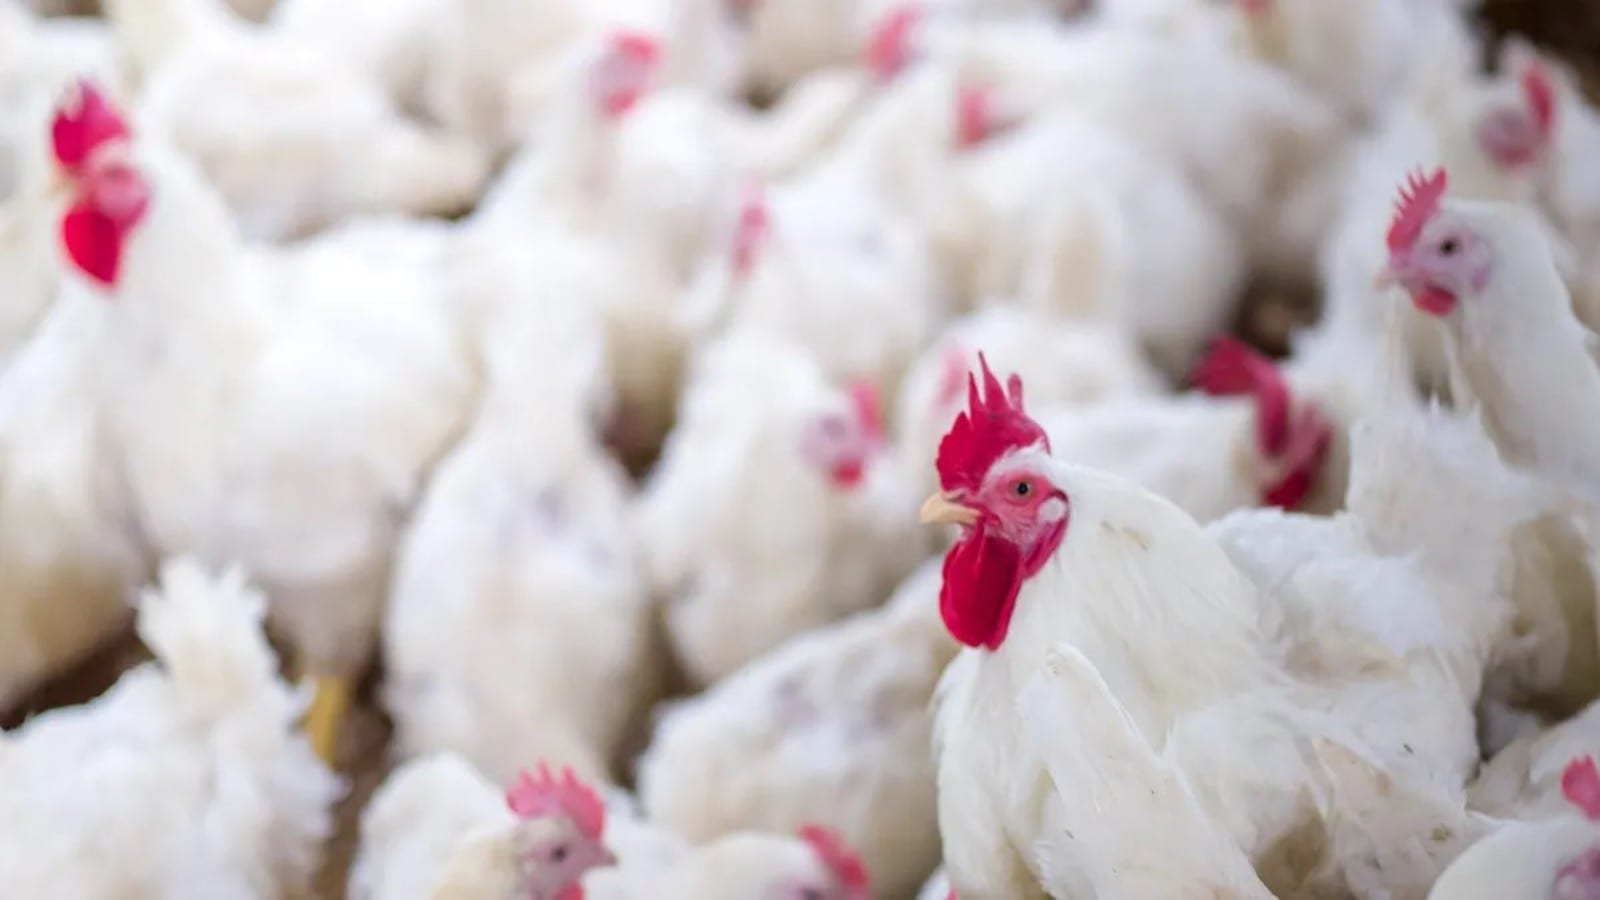 Avian flu spreads across Nigeria causing US$1.3m worth of poultry loss in Kano State